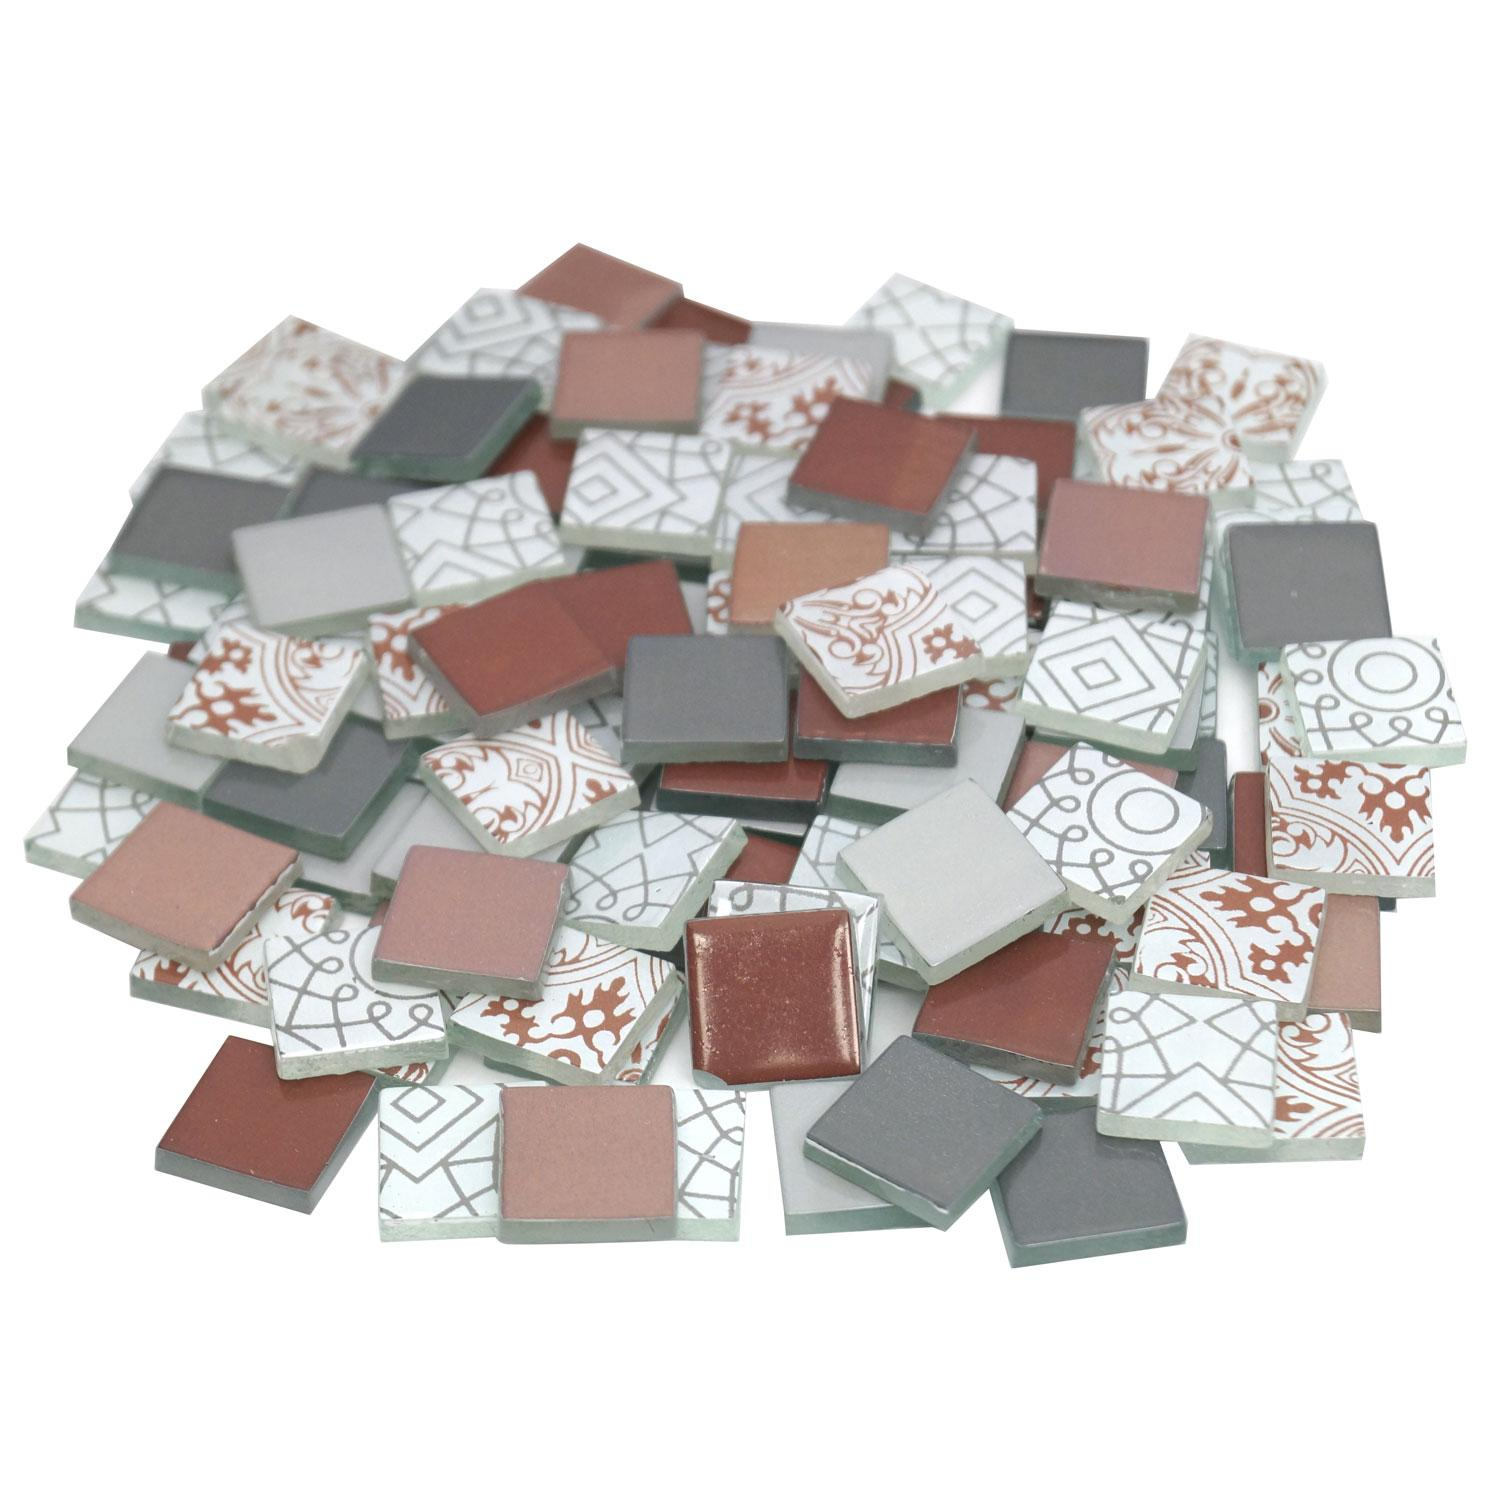 3/4 Berry Frost Patchwork Glass Tile Assortment - 1 lb